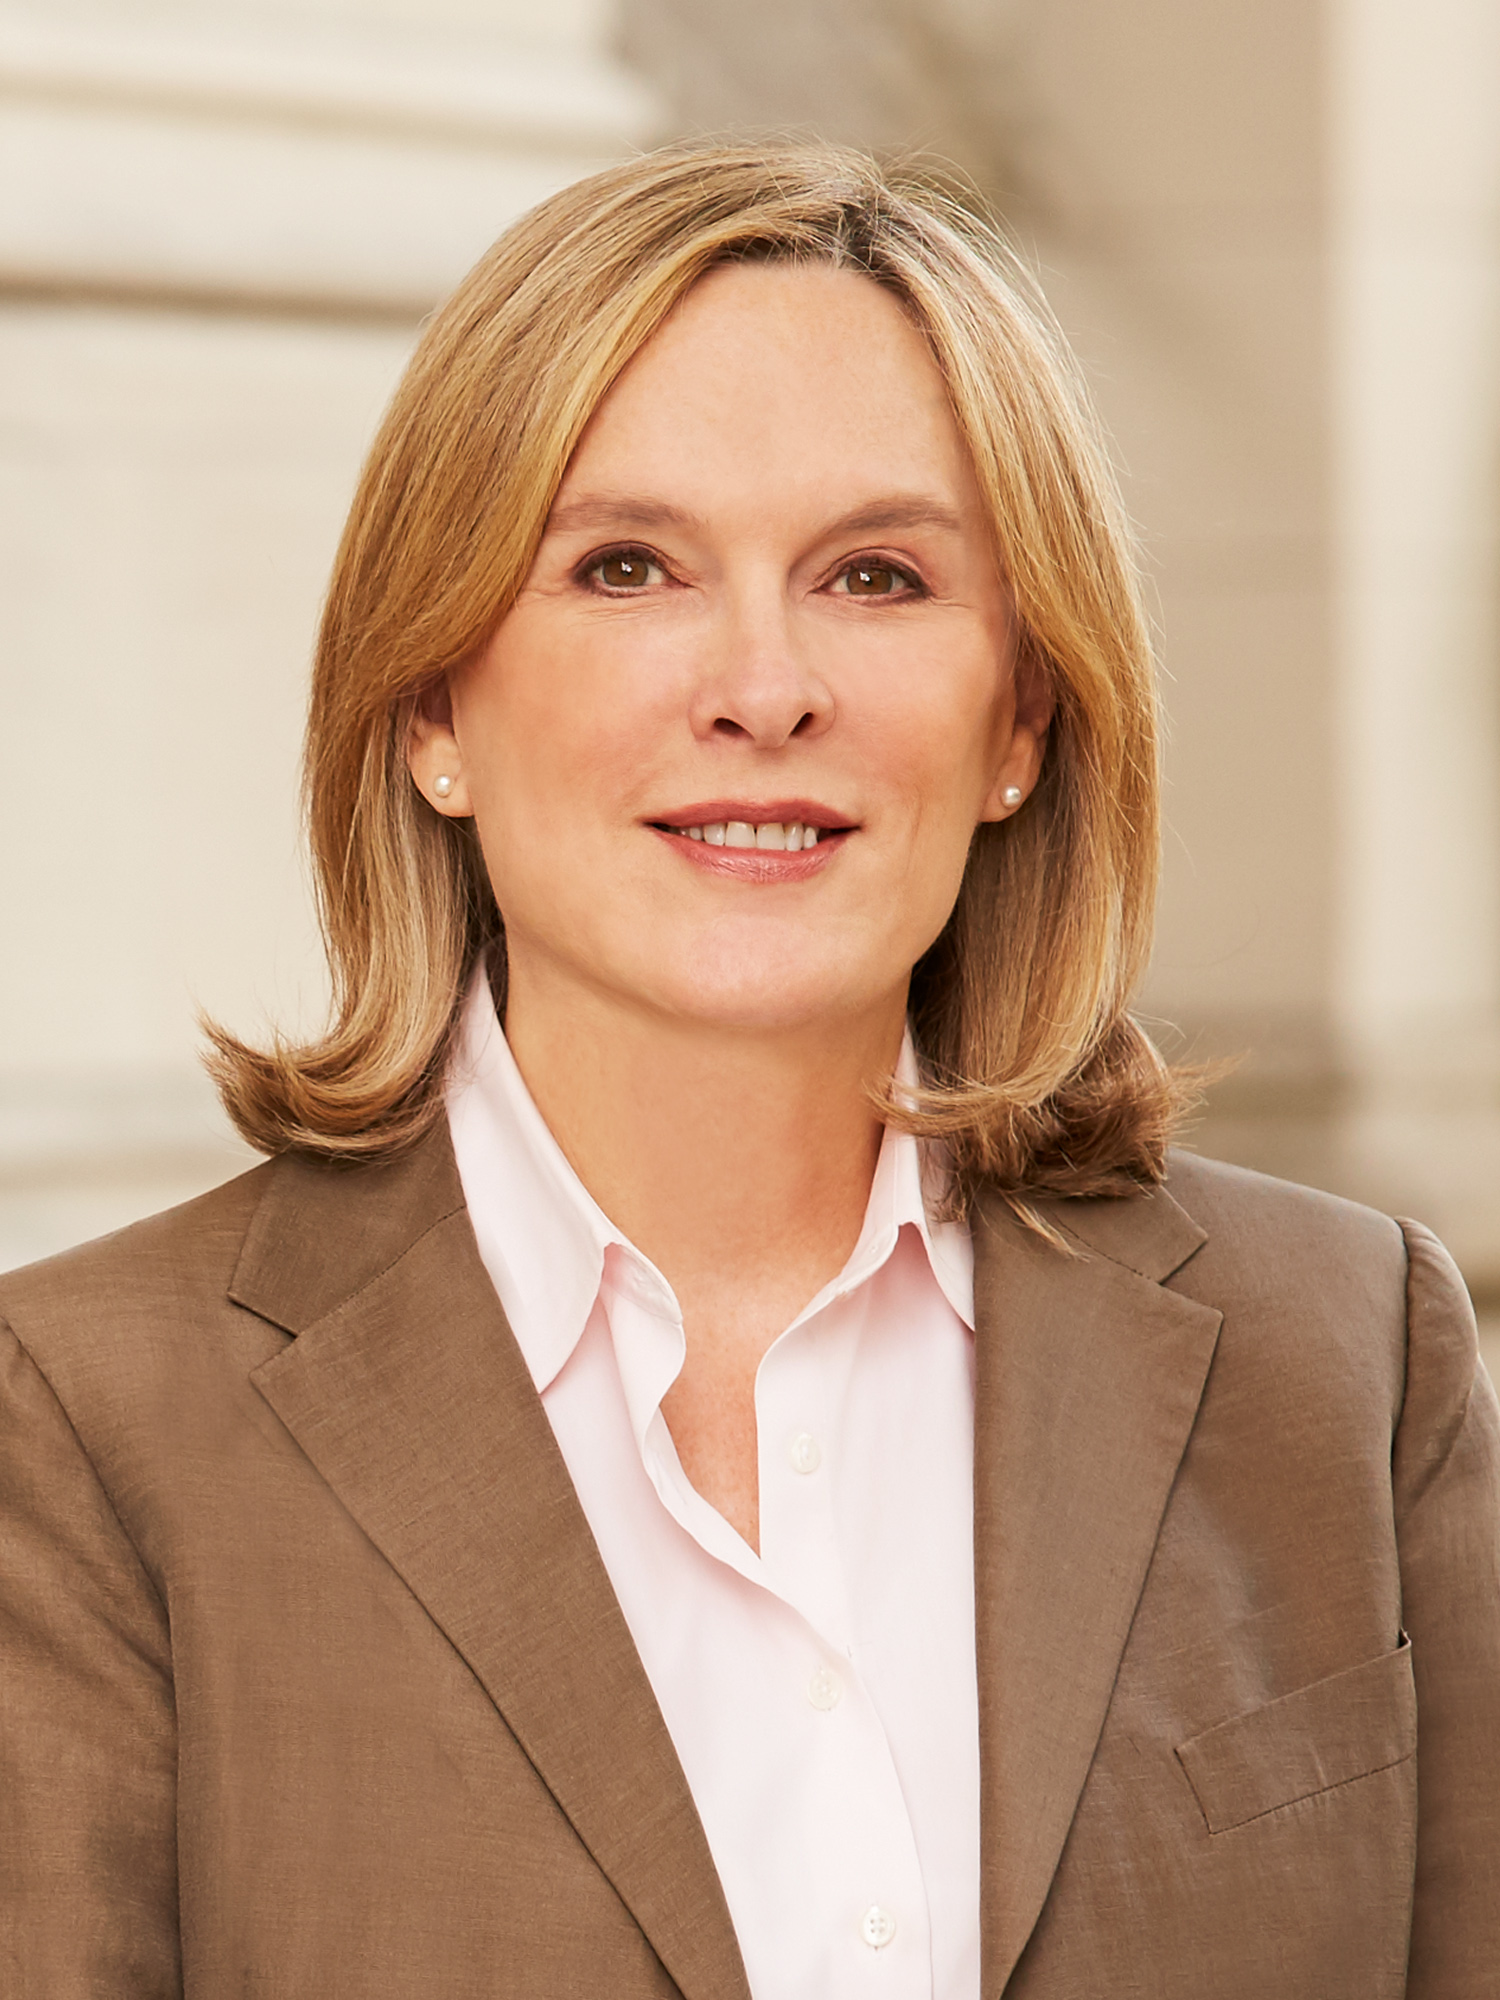 Cathleen Carmody, a top realtor in New York City for Corcoran, a real estate firm in West Side.